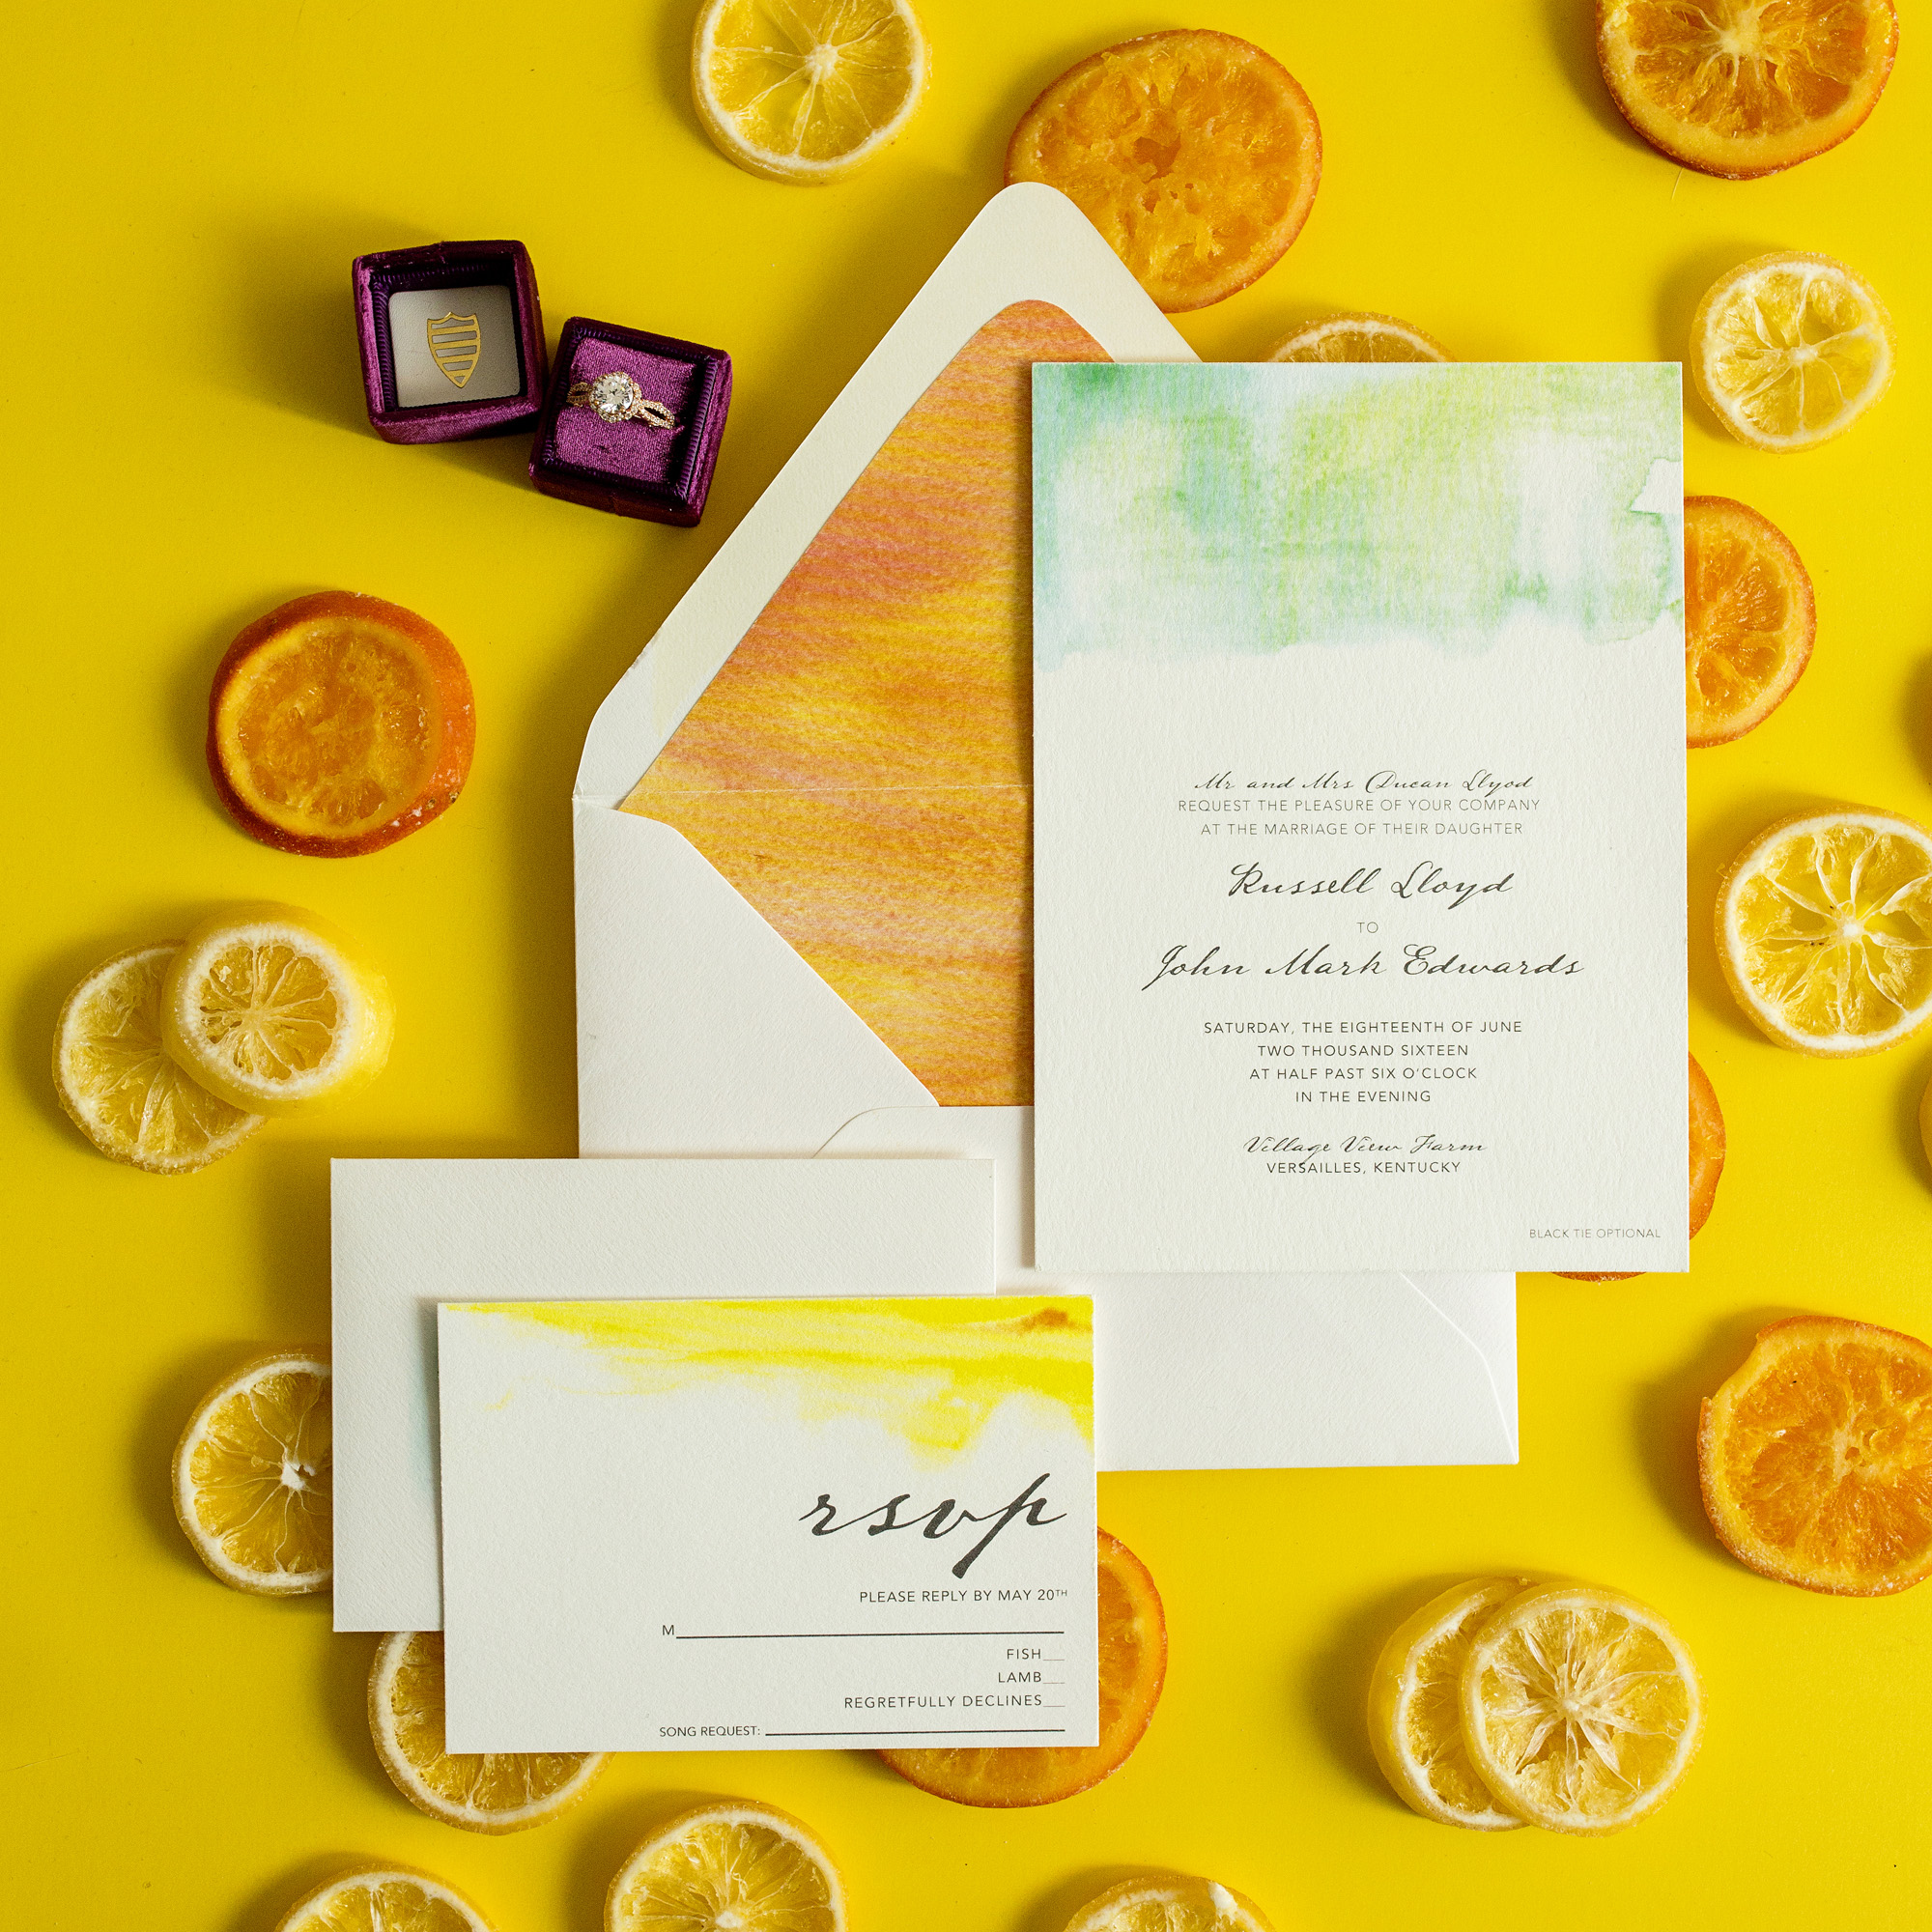 Seriously_Sabrina_Photography_Commercial_Simply_Done_Invites_2019_March_055